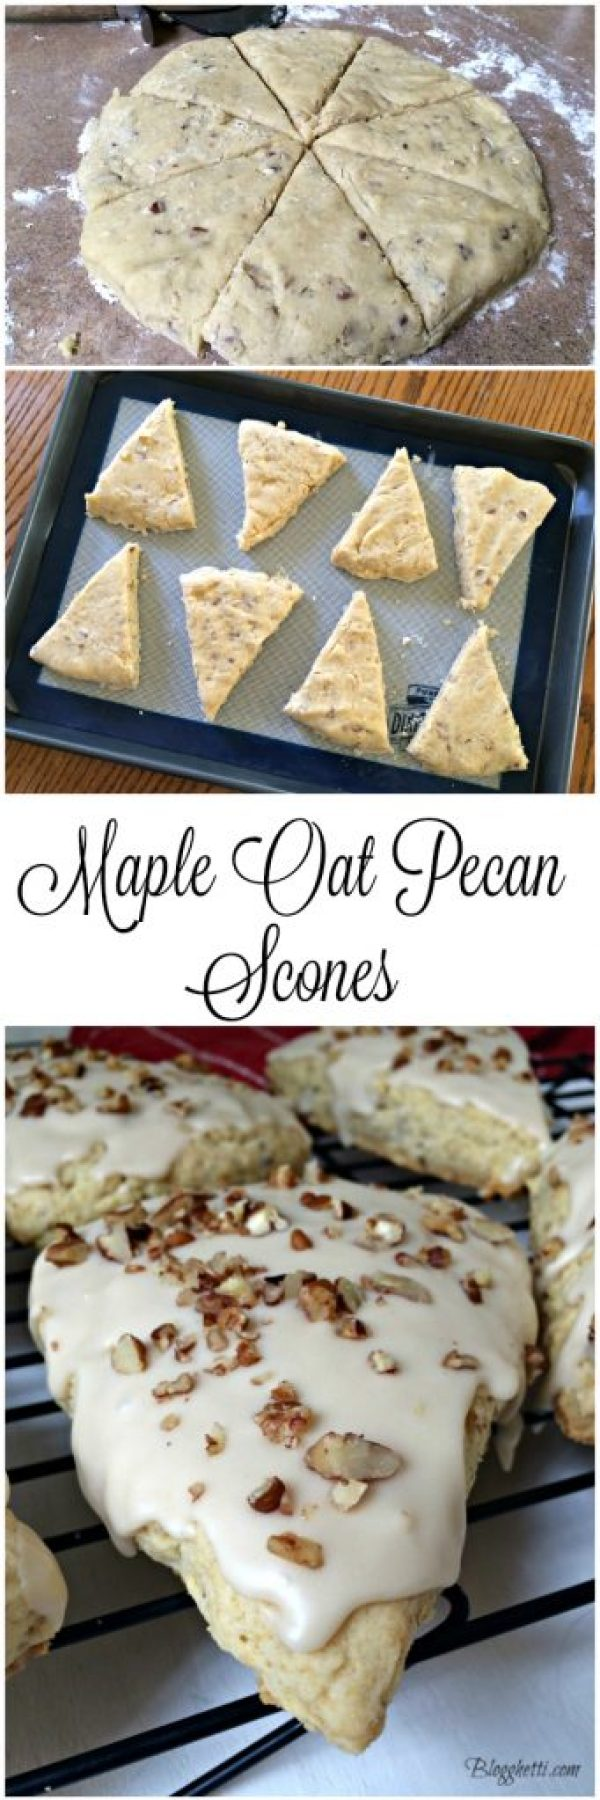 This Maple Oat Pecan Scone is filled with pecans, maple flavorings and then iced with a maple-coffee glaze and then topped with chopped pecans.